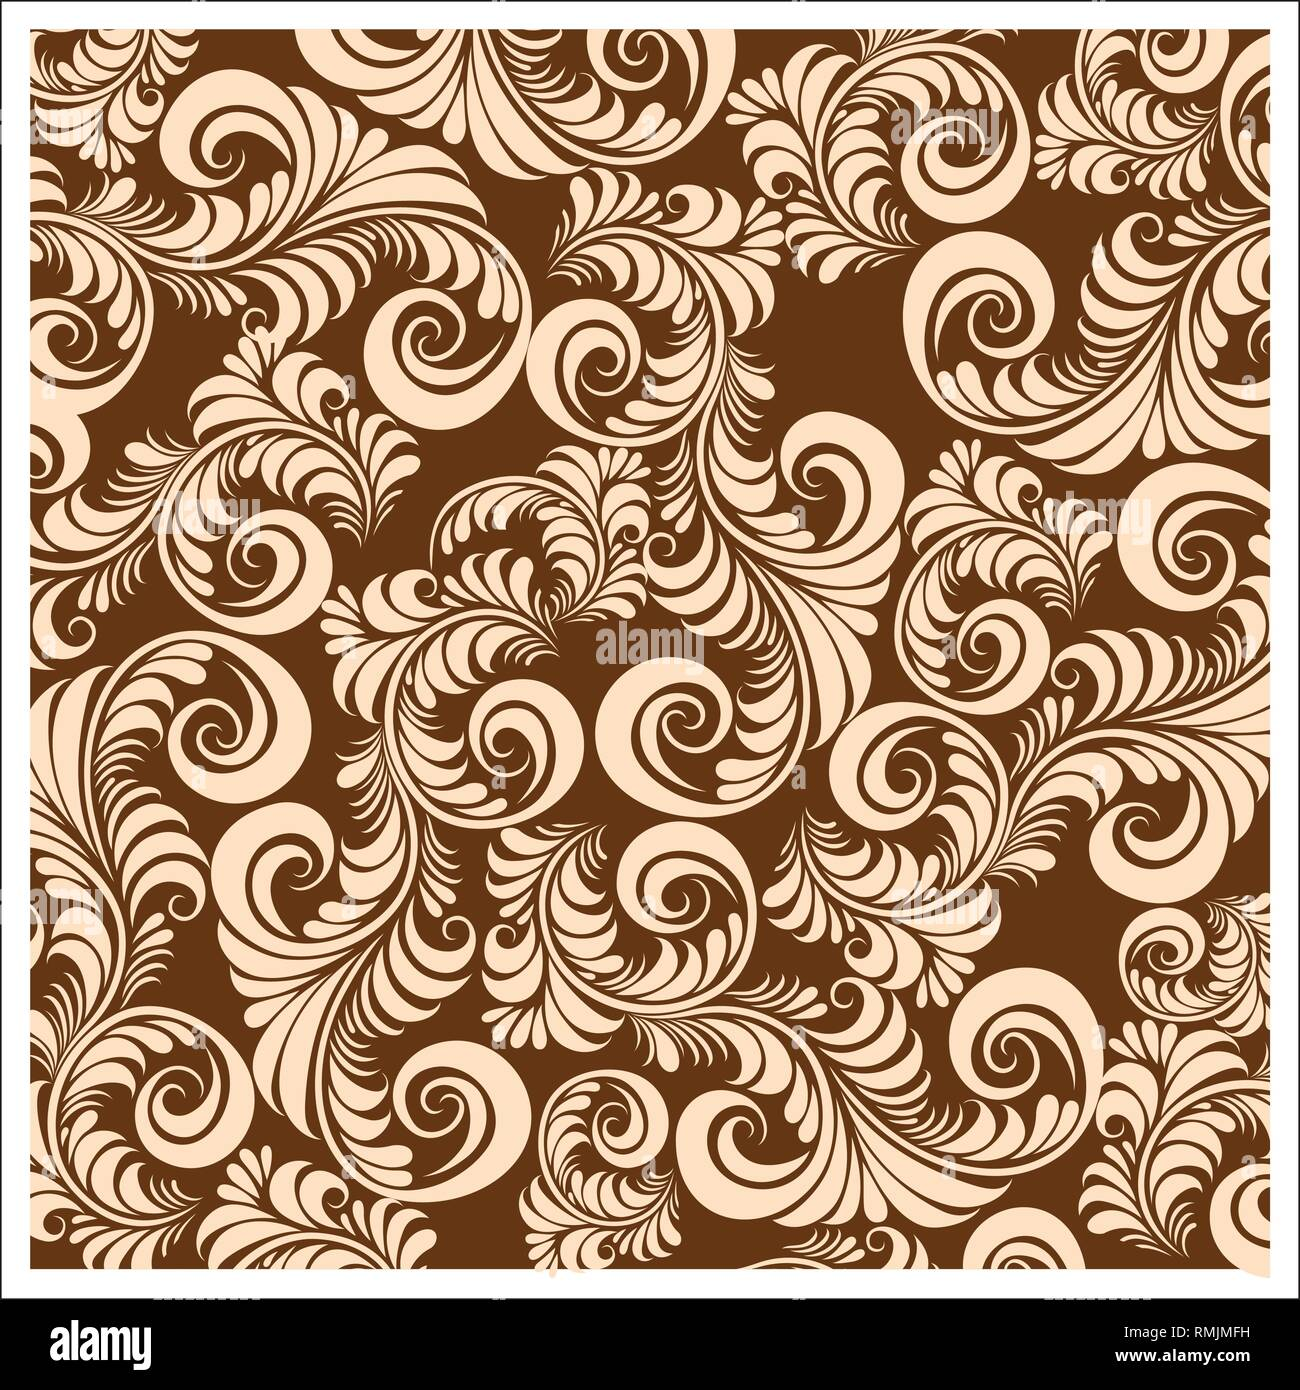 vector design batik patterns for wallpaper fabric decoration and other designs stock vector image art alamy https www alamy com vector design batik patterns for wallpaper fabric decoration and other designs image236439157 html